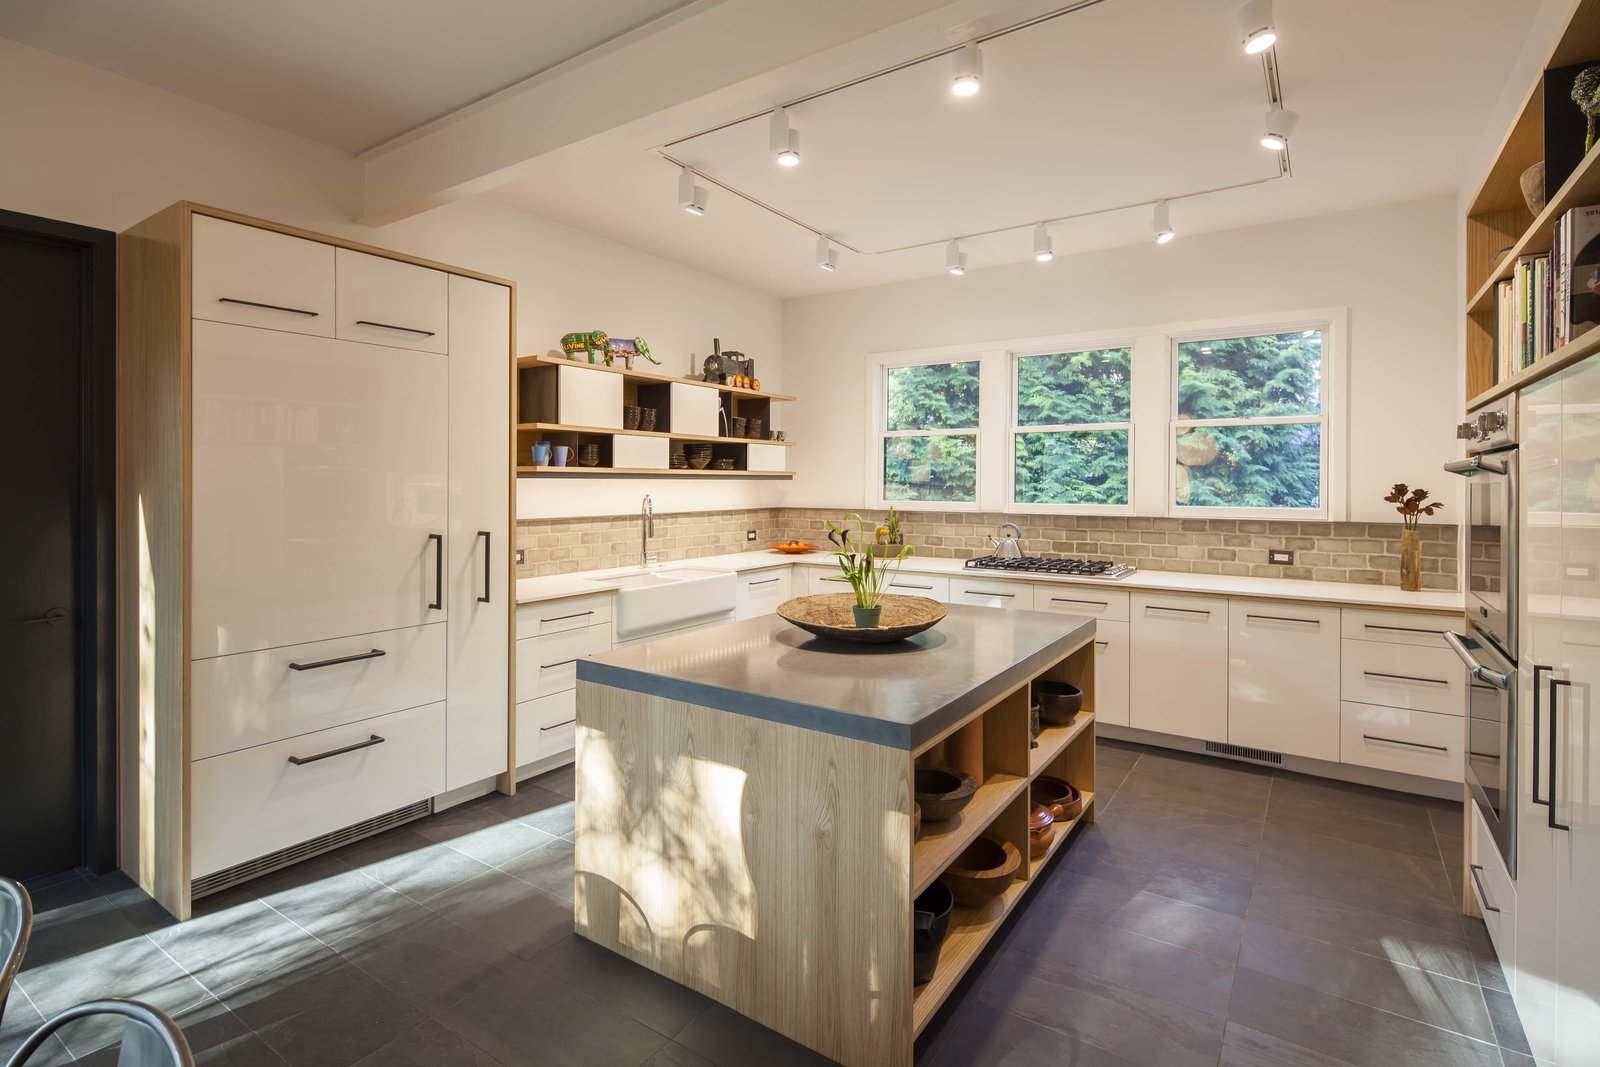 Kitchen, Concrete, White, Slate, Wood, Ceiling, Wall Oven, and Track New custom kitchen with high-gloss cabinets, custom plywood enclosures, concrete island counter top.  Best Kitchen Slate Wall Oven Photos from Professors Row